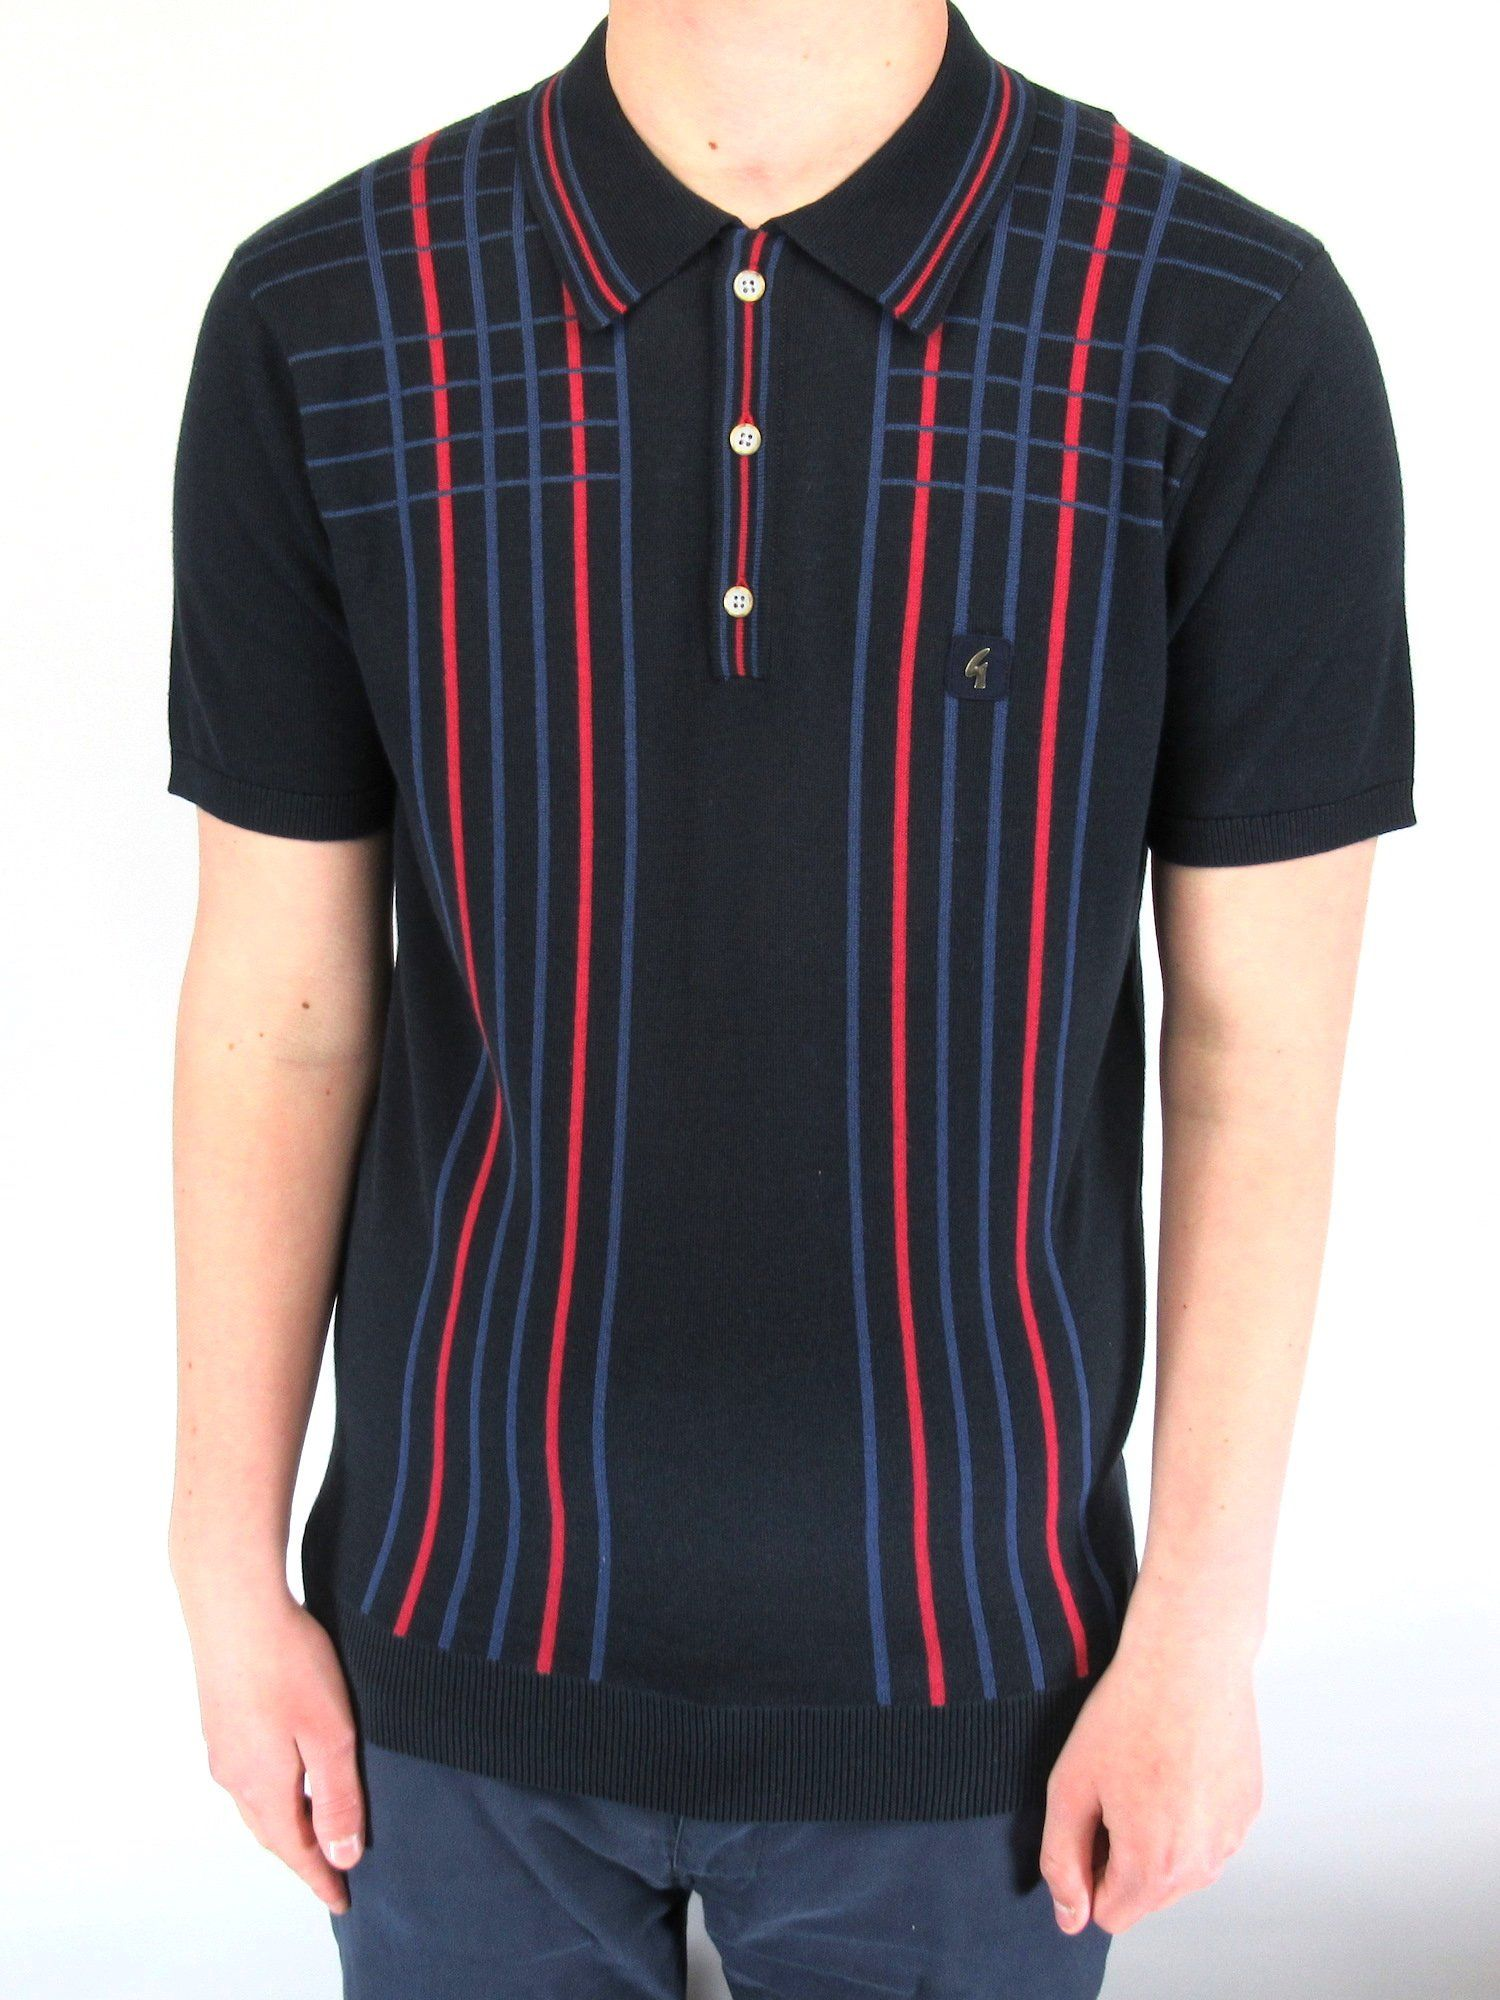 Bale Navy & Red Checked Stripe Knitted Polo Shirt 2XL